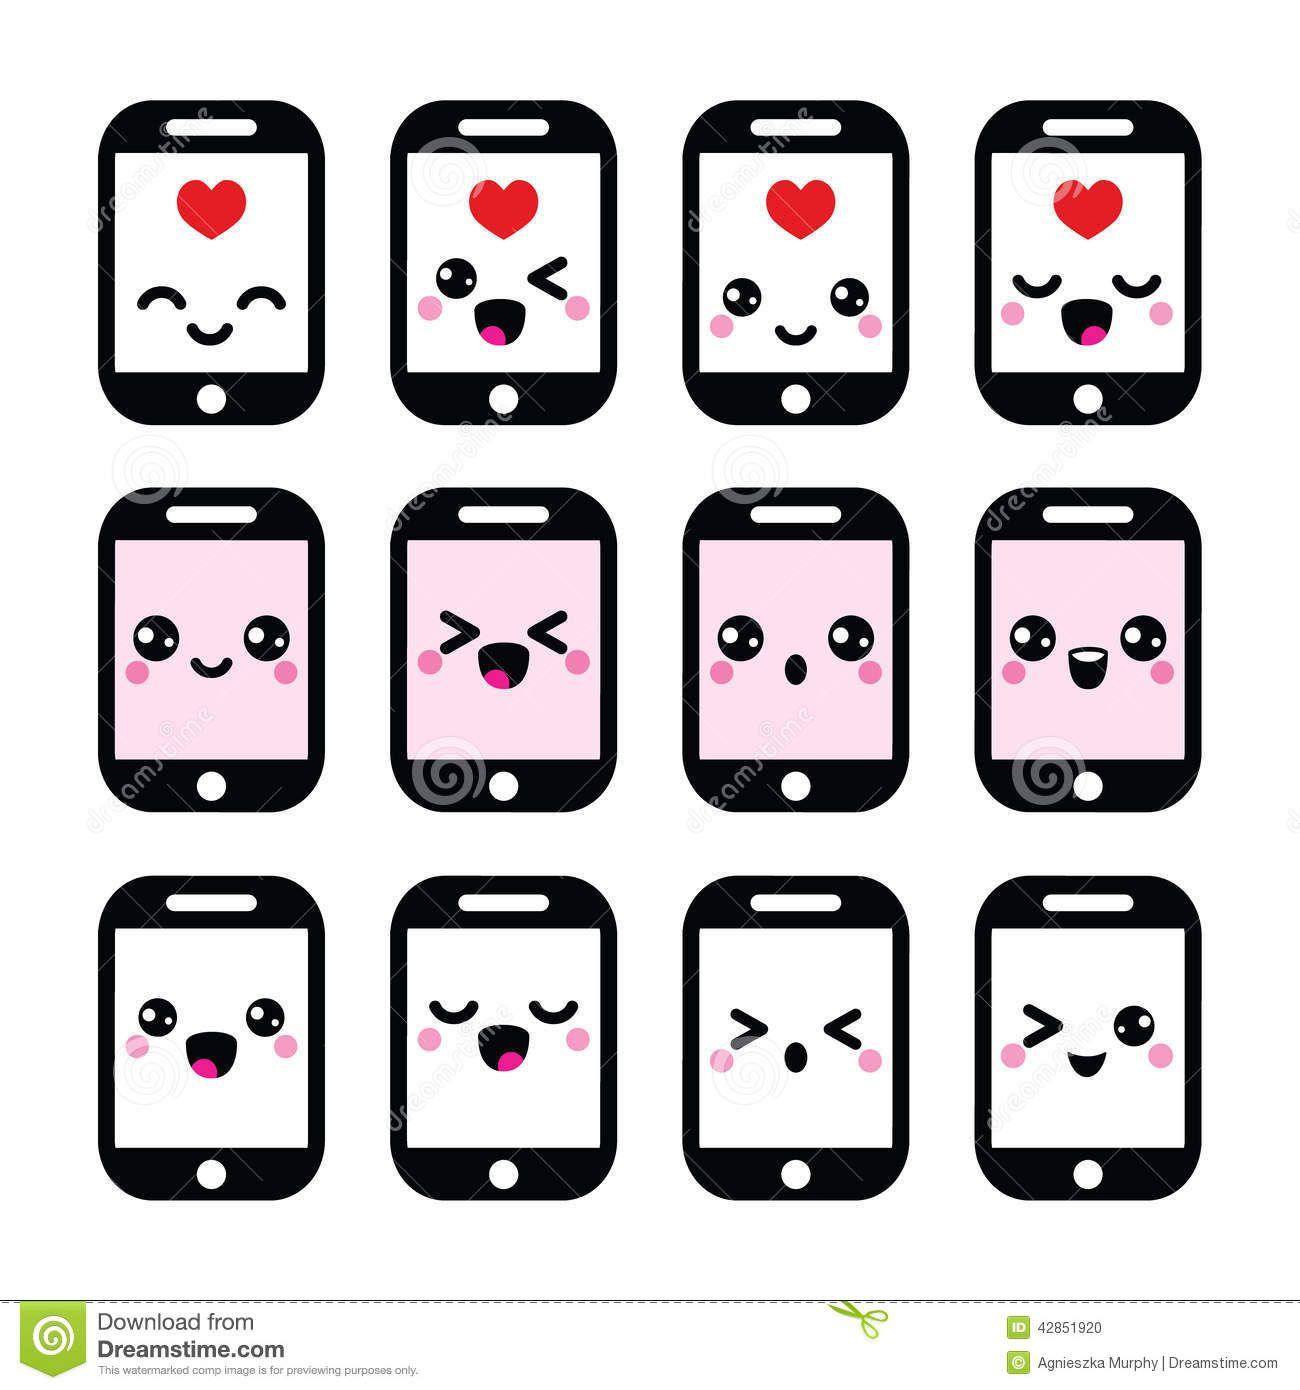 Expresiones Kawaii Phone icon, Business vector illustration